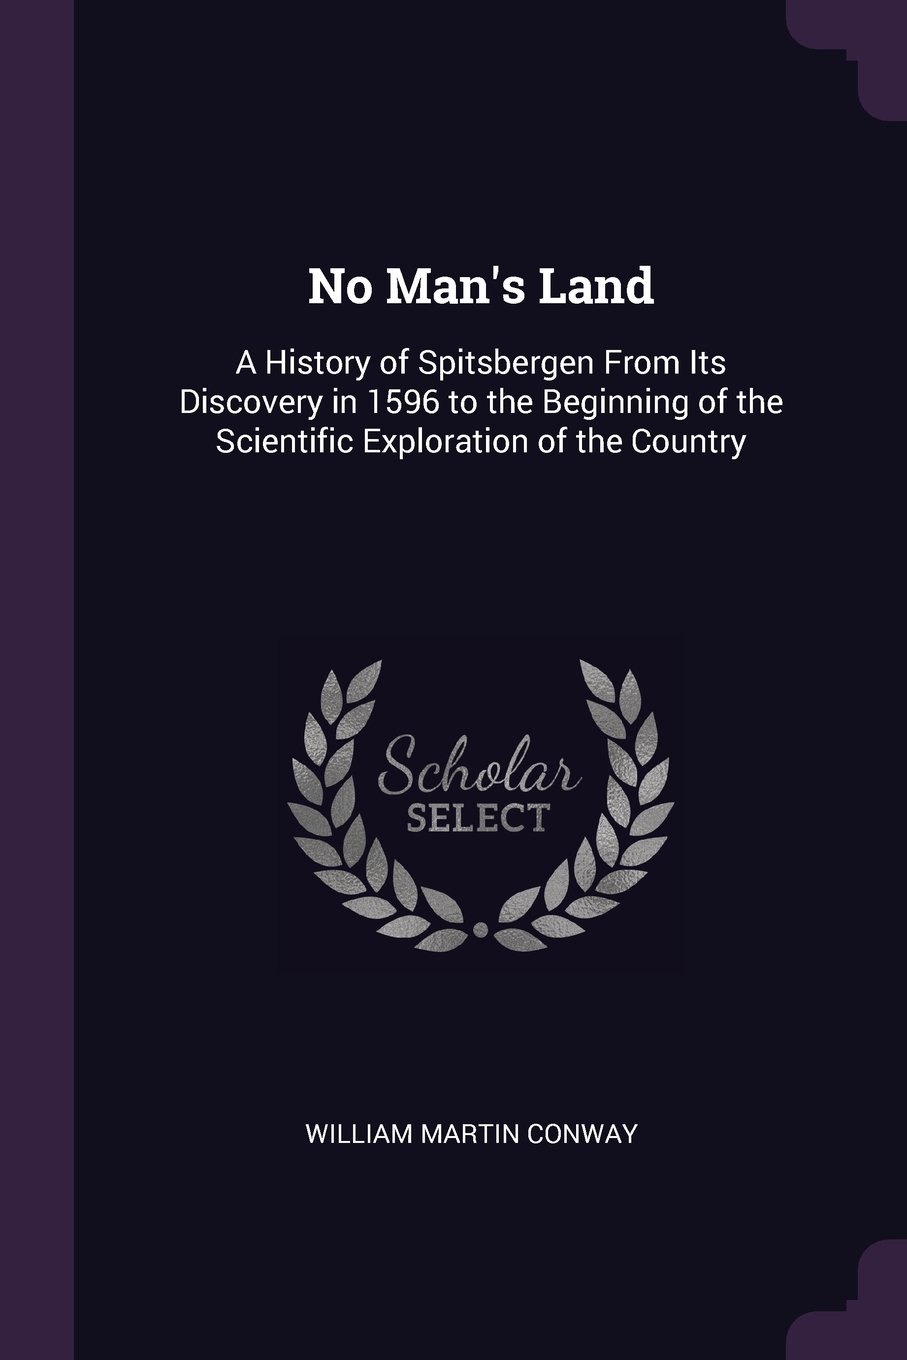 Download No Man's Land: A History of Spitsbergen From Its Discovery in 1596 to the Beginning of the Scientific Exploration of the Country ebook